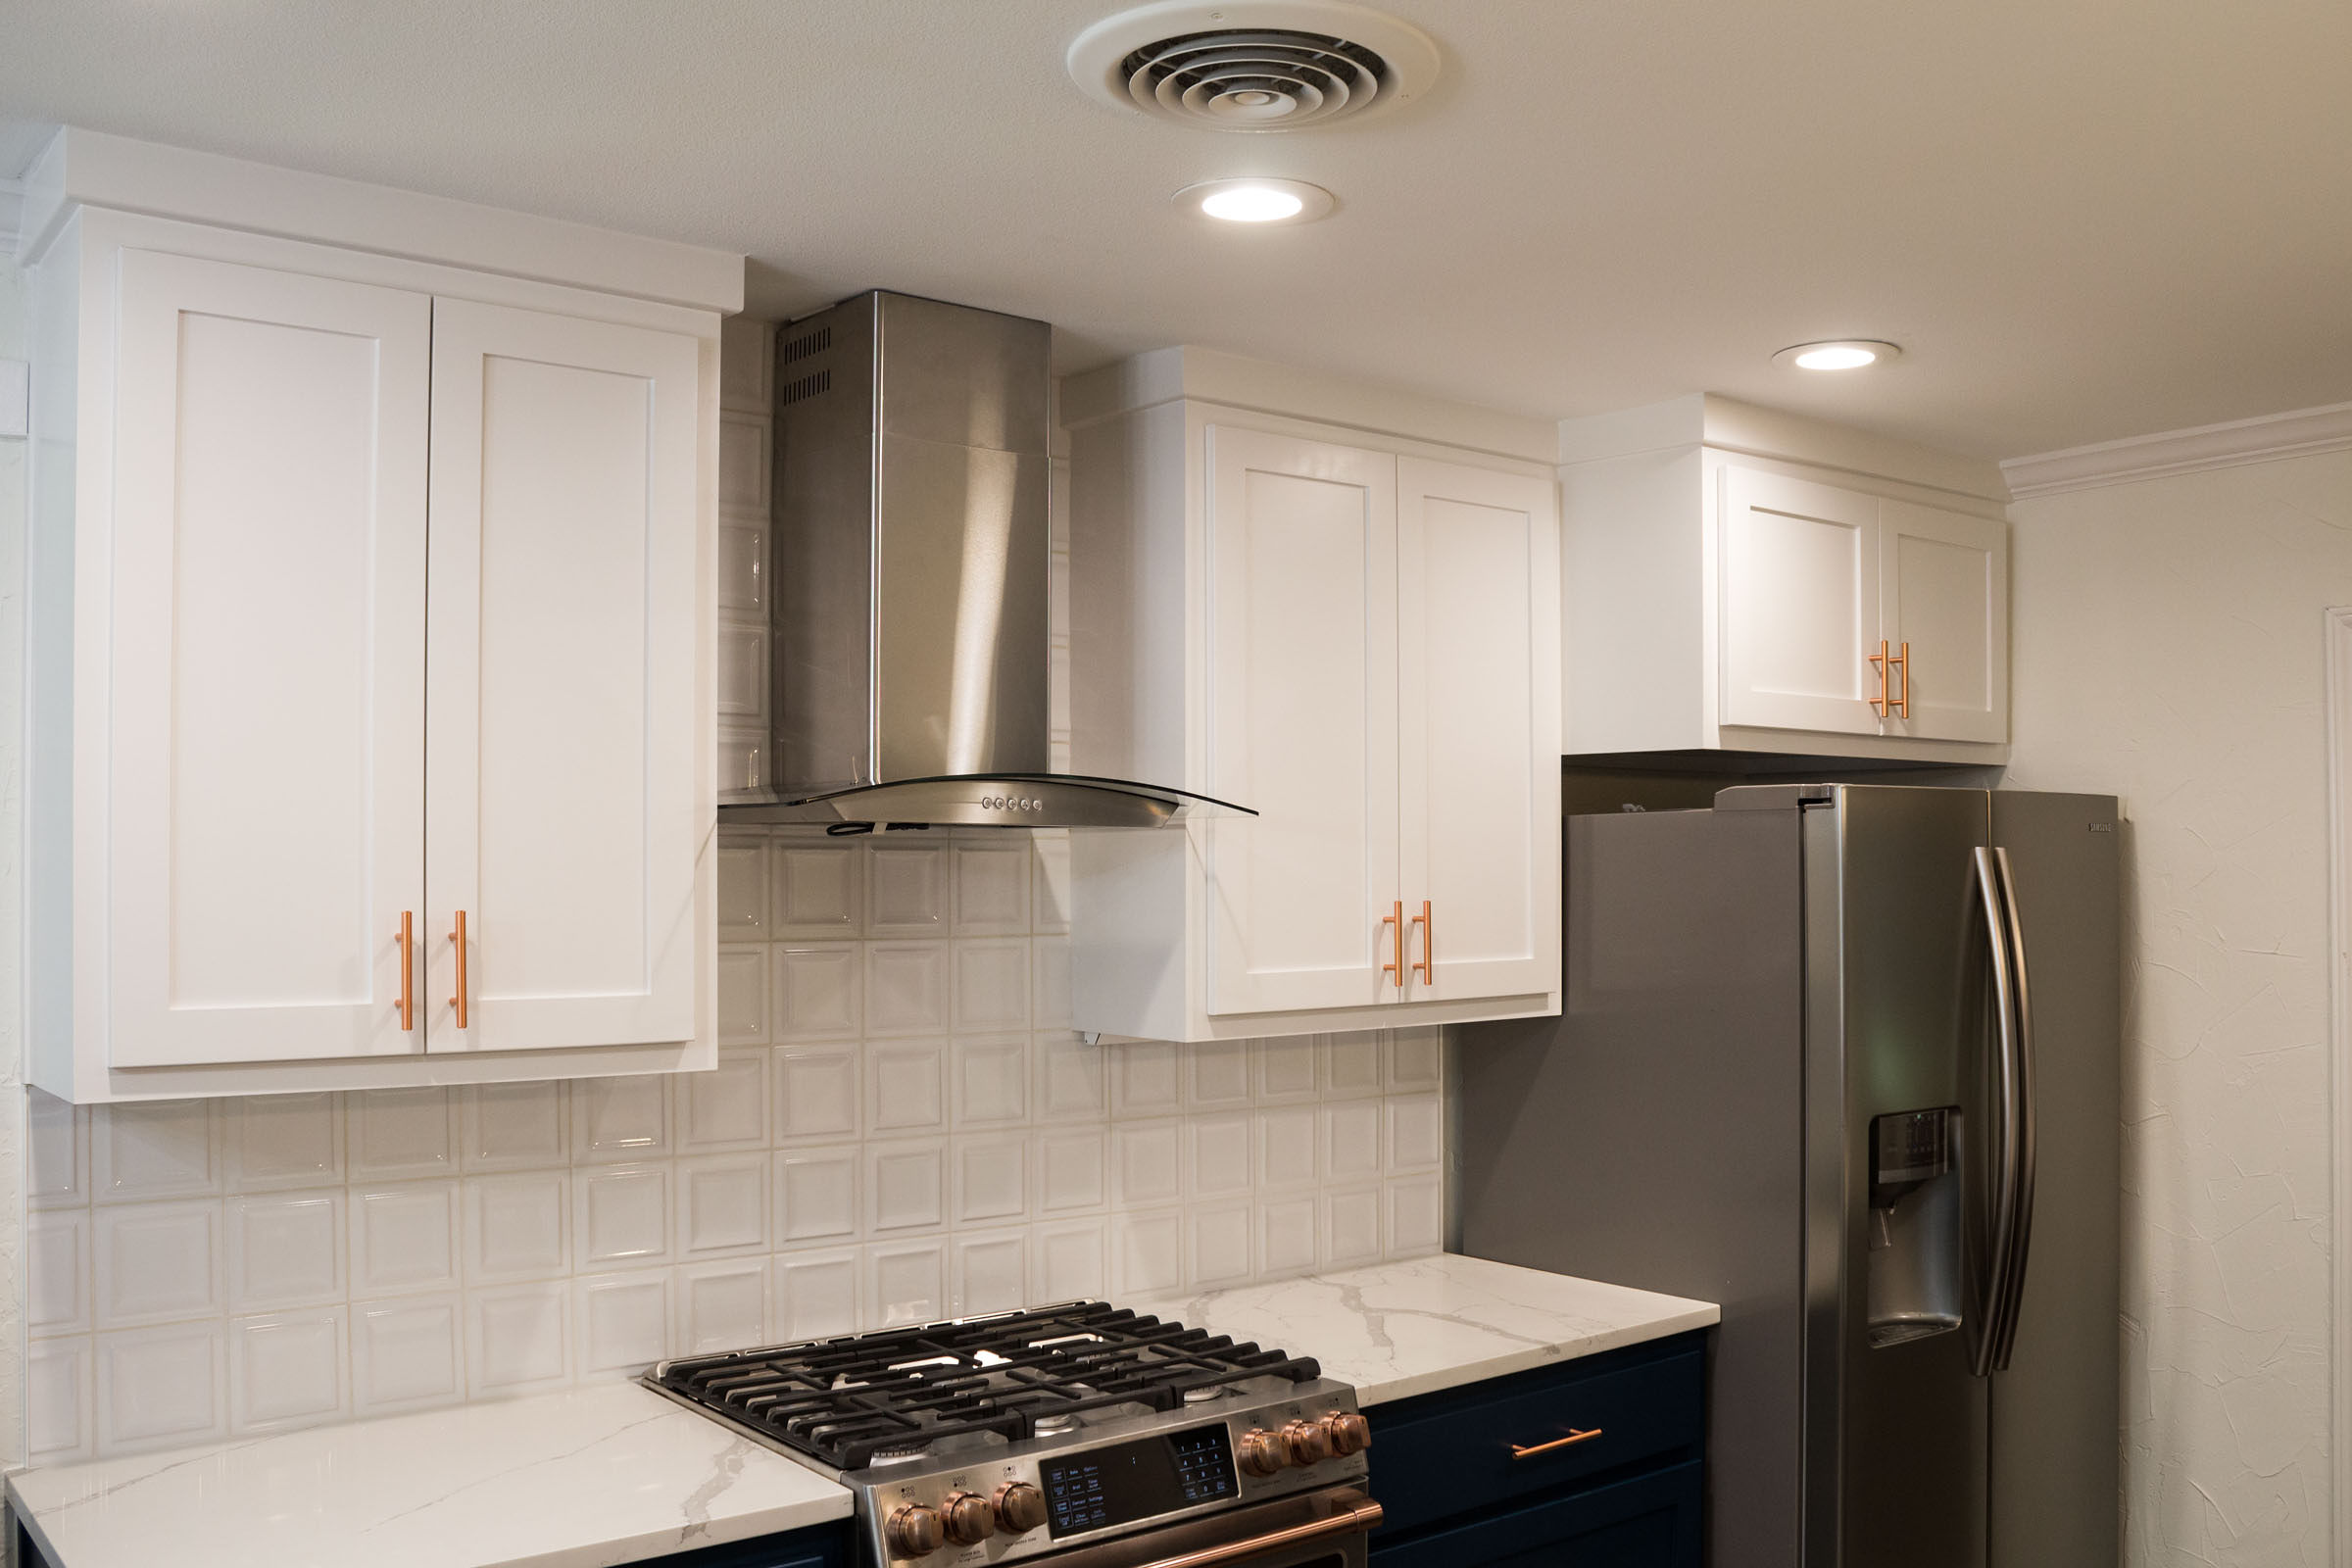 Stainless steel vent hood, copper hardware, white upper cabinets, navy lower cabinets